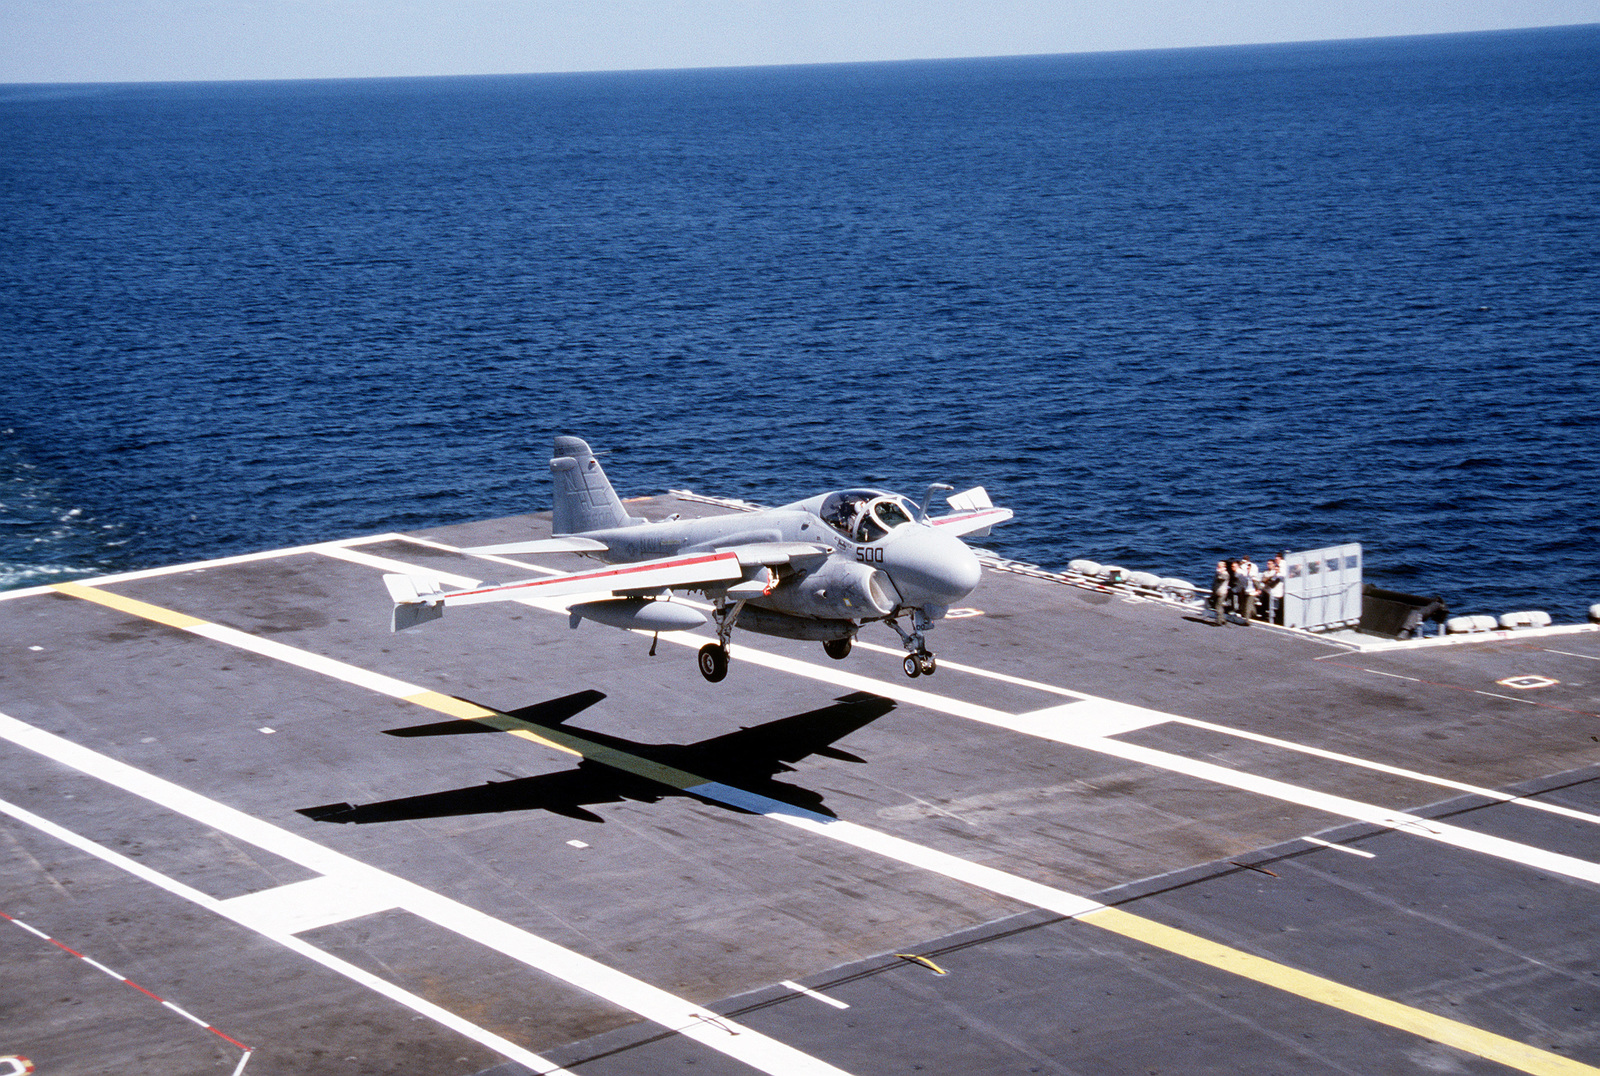 """An Attack Squadron 95 (VA-95) A-6E Intruder aircraft comes in for a landing on the flight deck of the nuclear-powered aircraft carrier USS ABRAHAM LINCOLN (CVN-72). The aircraft, piloted by air wing commander CAPT. """"Spider"""" Webb, is the first plane of Carrier Air Wing II (CVW-11) to land aboard the ship"""